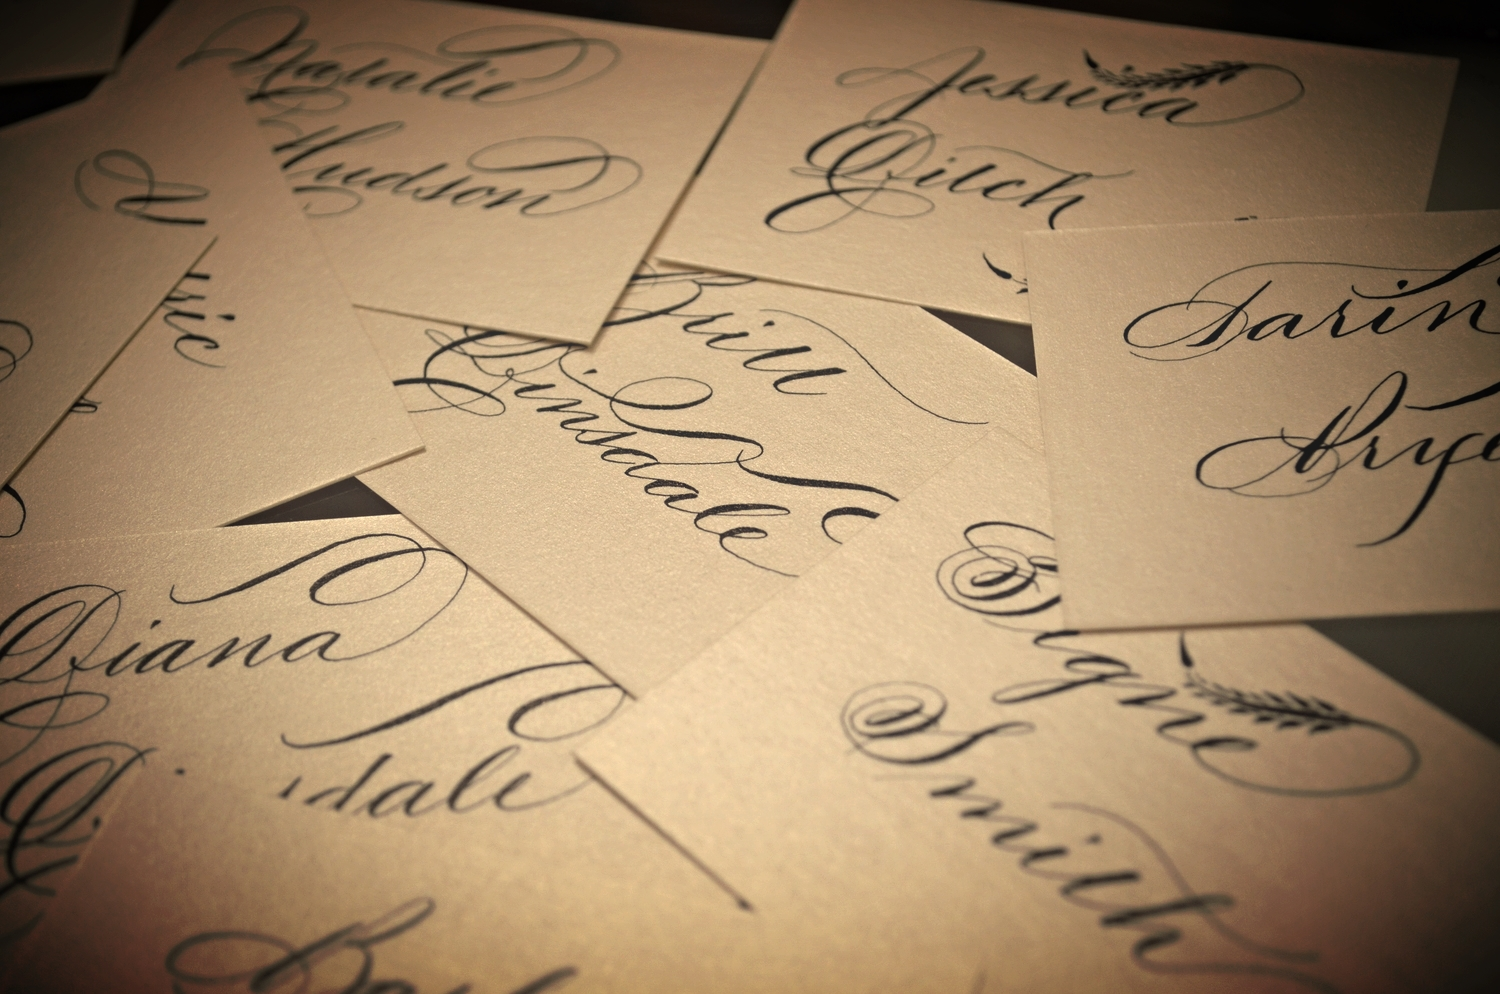 Houston Wedding Calligraphy.JPG